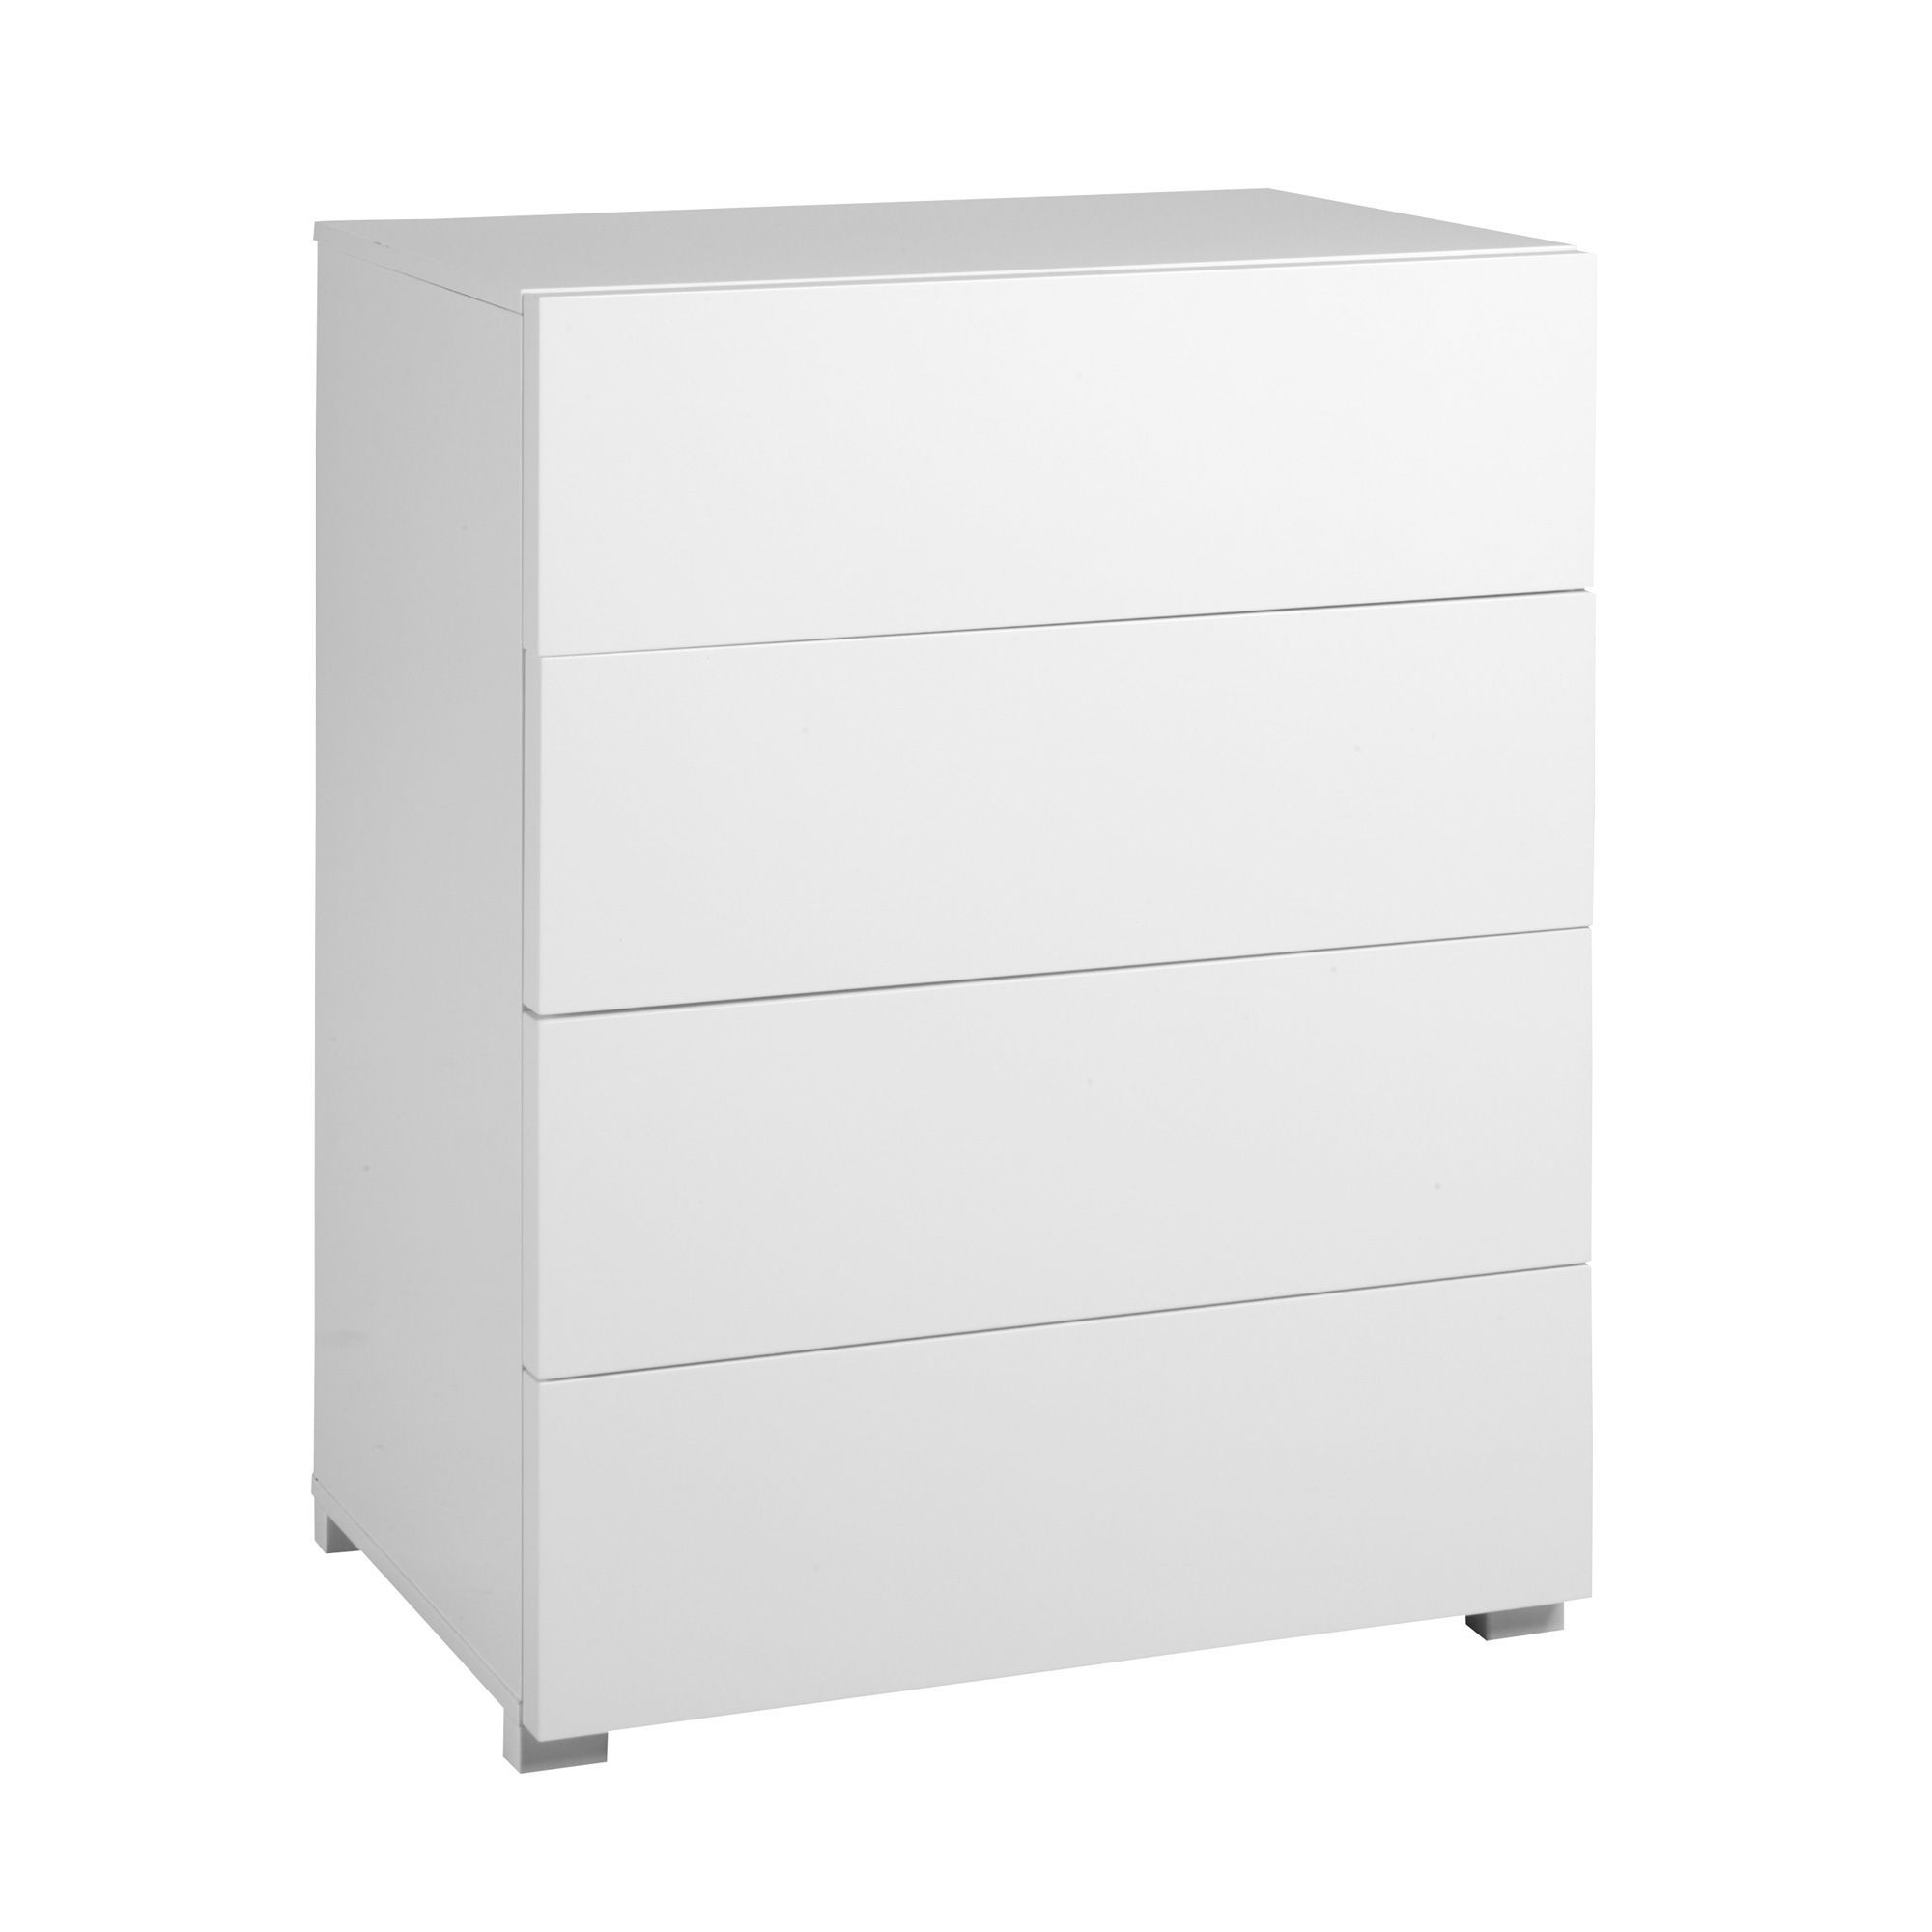 Alinea Commode Blanche Commode 4 Tiroirs Blanc Brillant Blanc Gloss Les